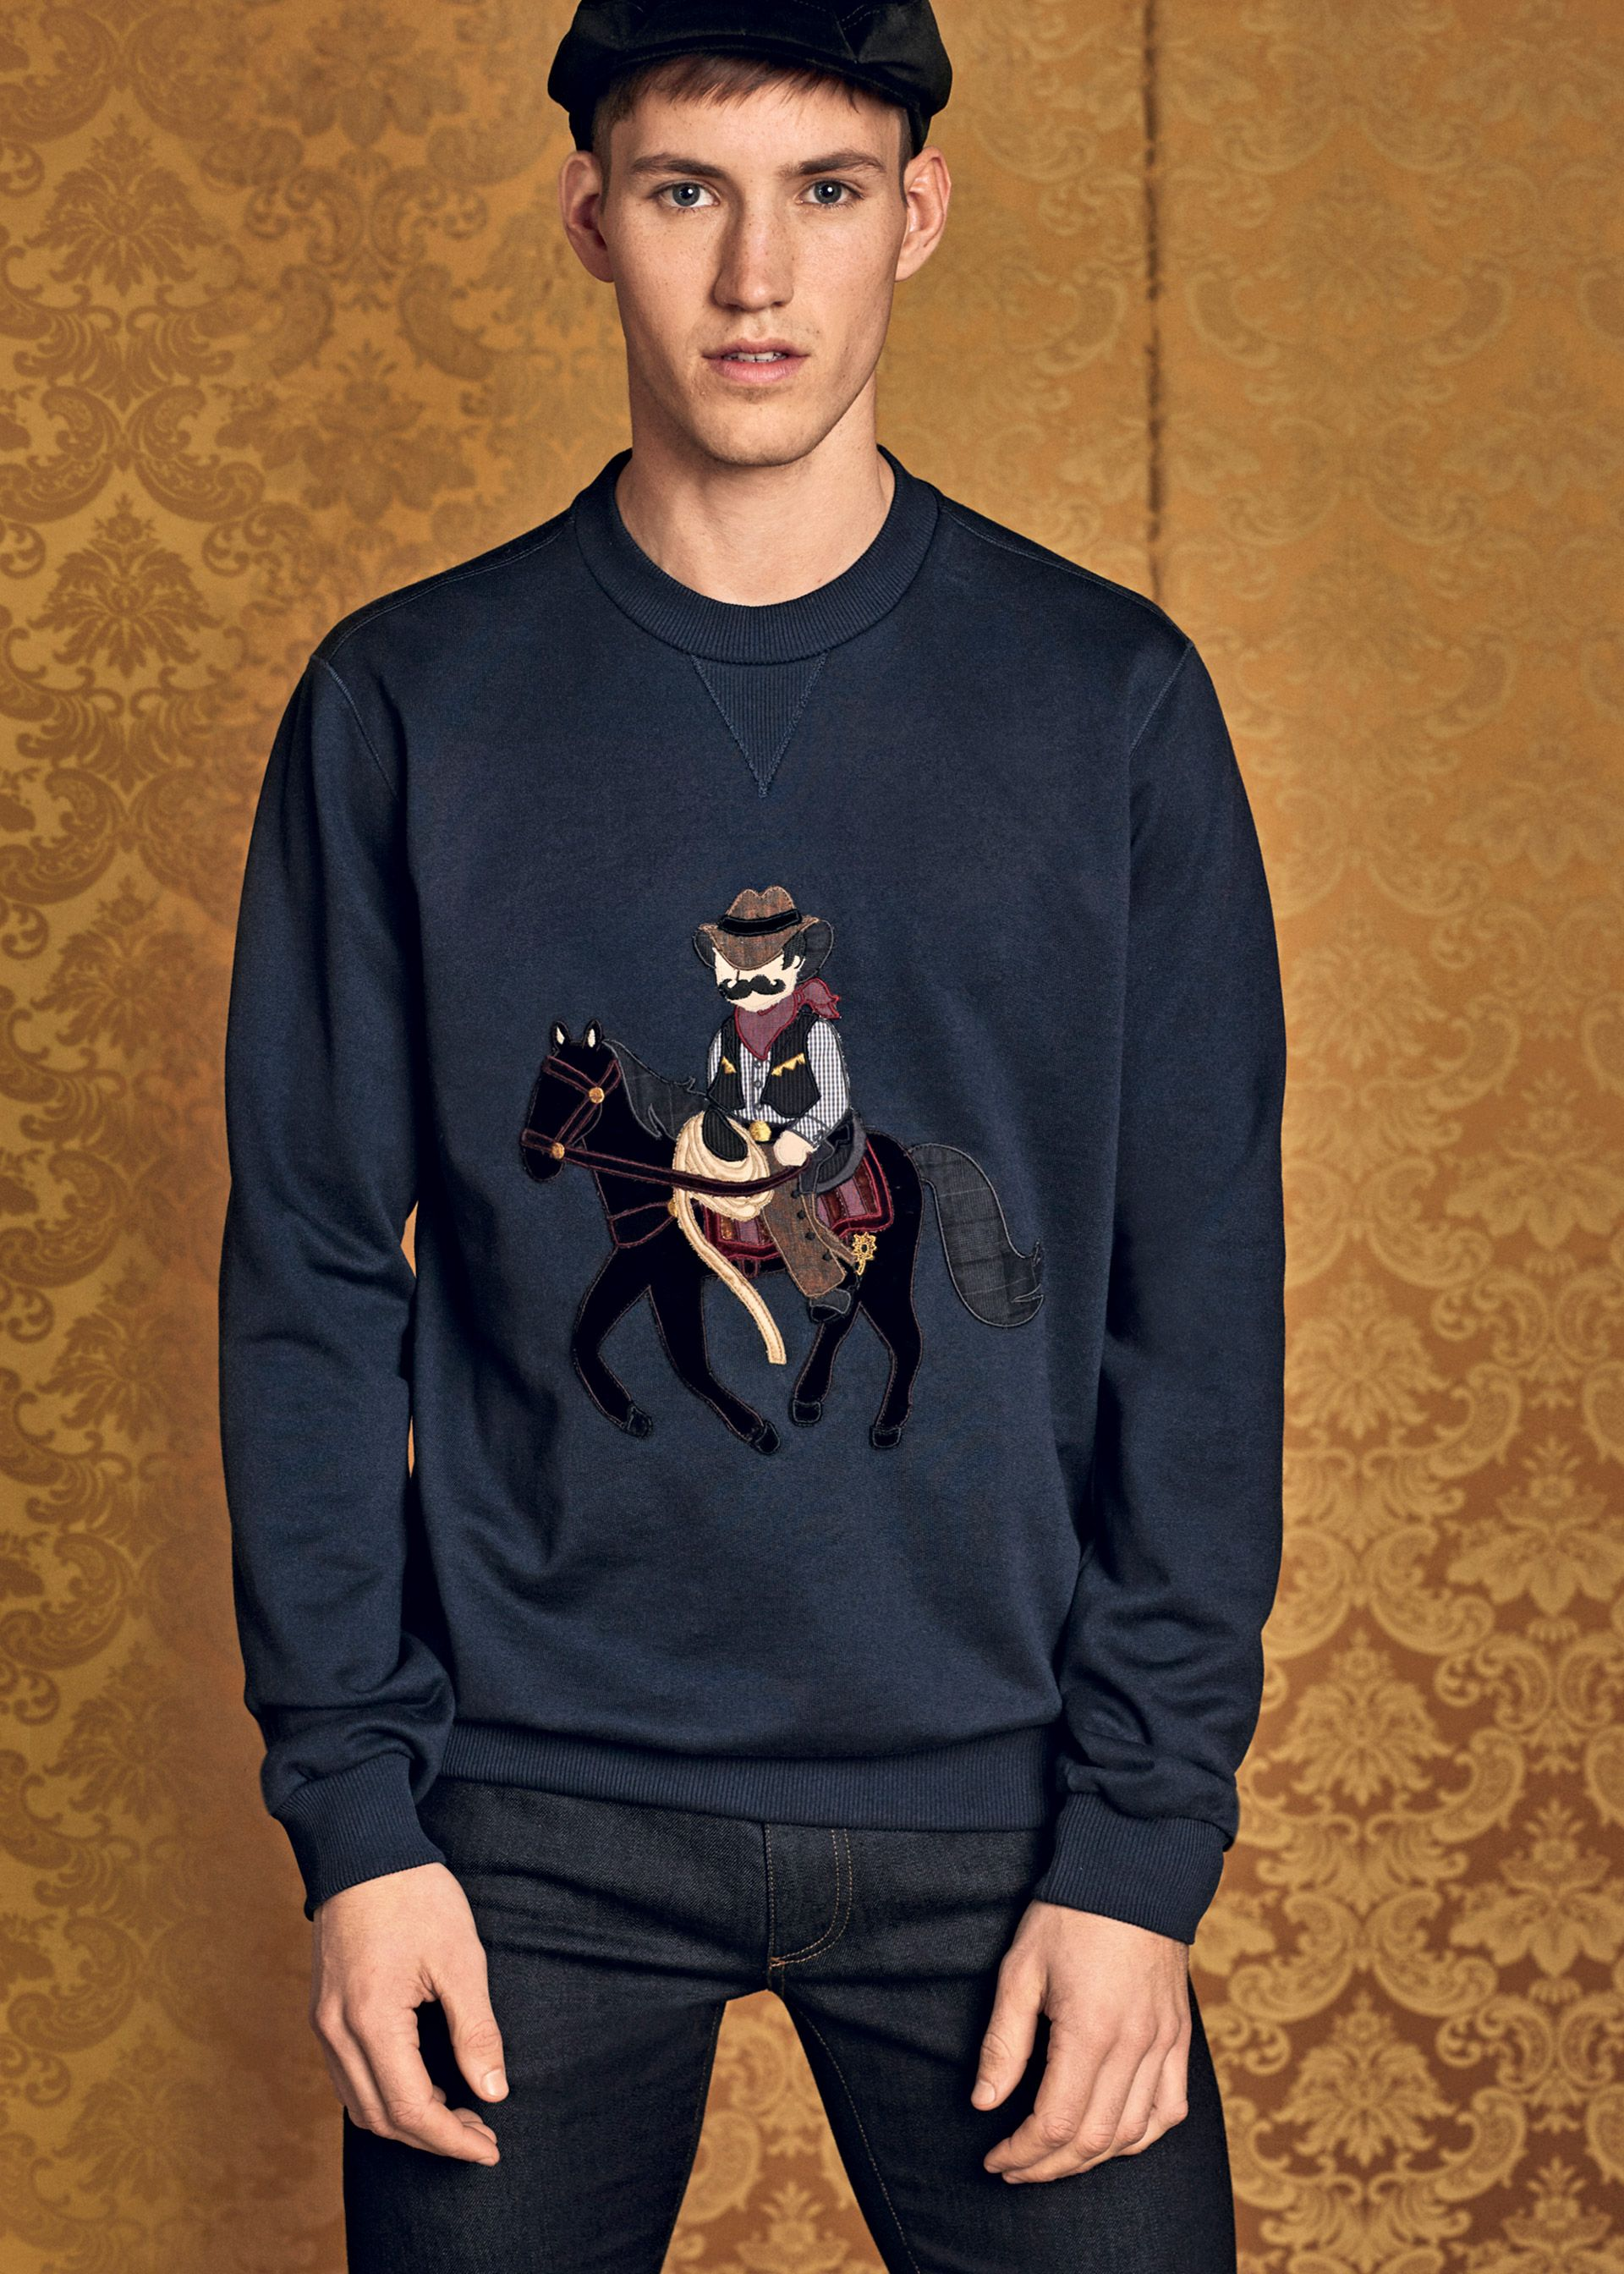 d808f36284 Discover the new Dolce & Gabbana Men's Romantic Sicily Collection for Fall  Winter 2016 2017 and get inspired.